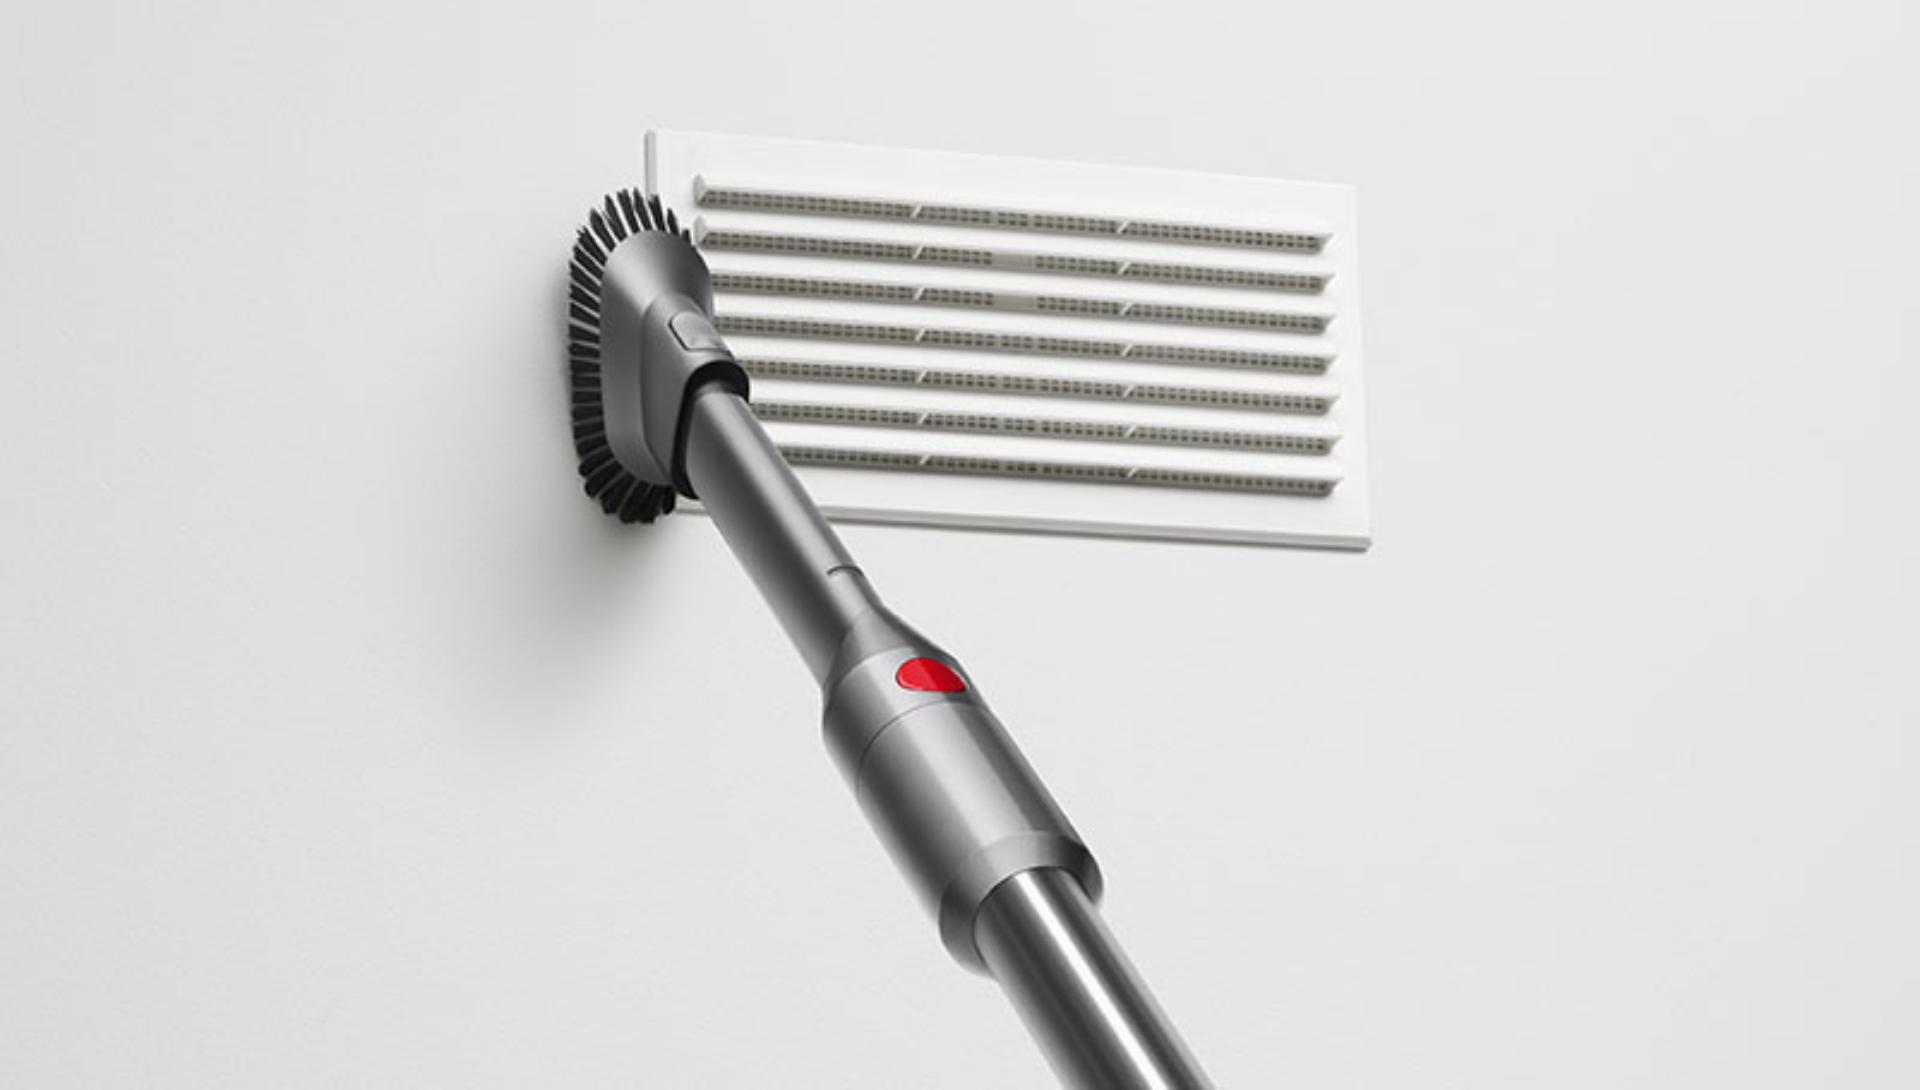 Dyson Micro 1.5kg vacuum cleaning a wall.